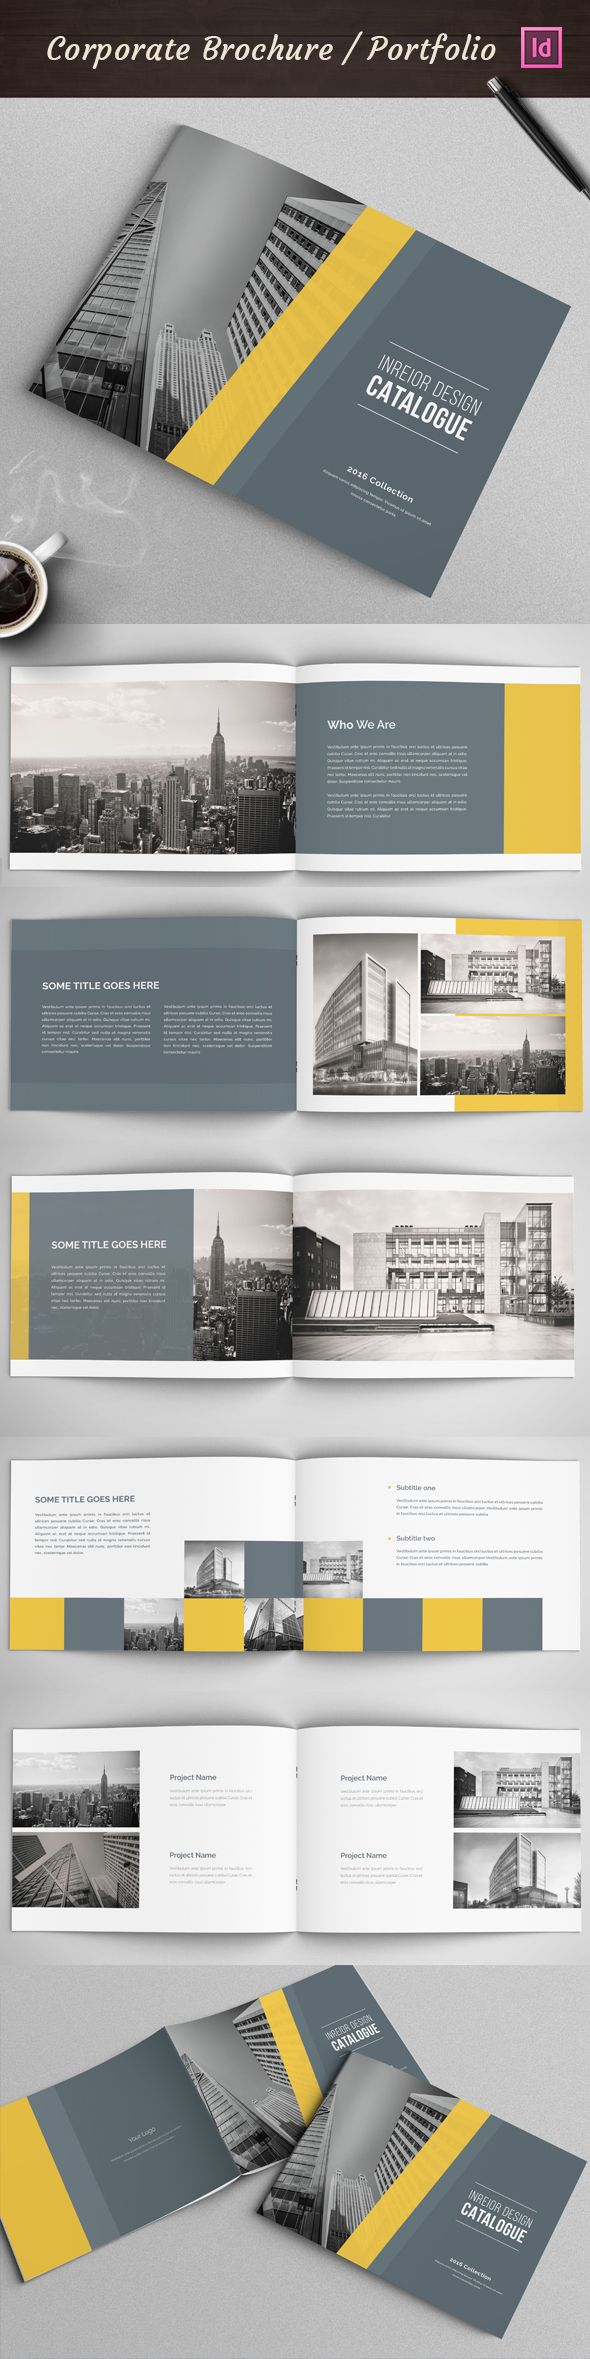 This Is 12 Page Minimal Brochure Catalogs Template For Designers Working On Product